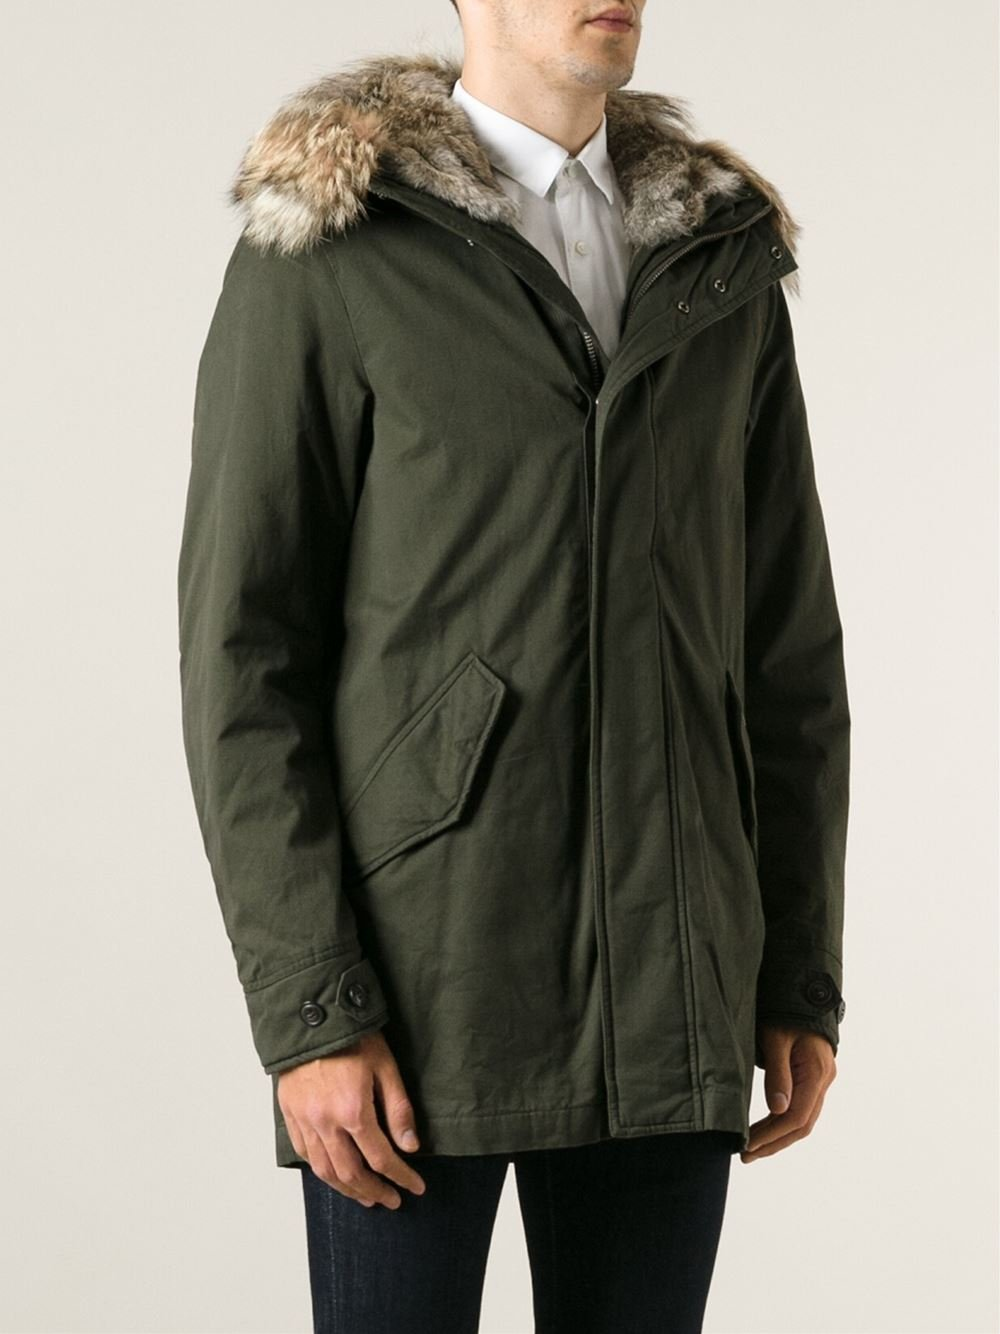 woolrich 39 eskimo 39 parka in green for men lyst. Black Bedroom Furniture Sets. Home Design Ideas